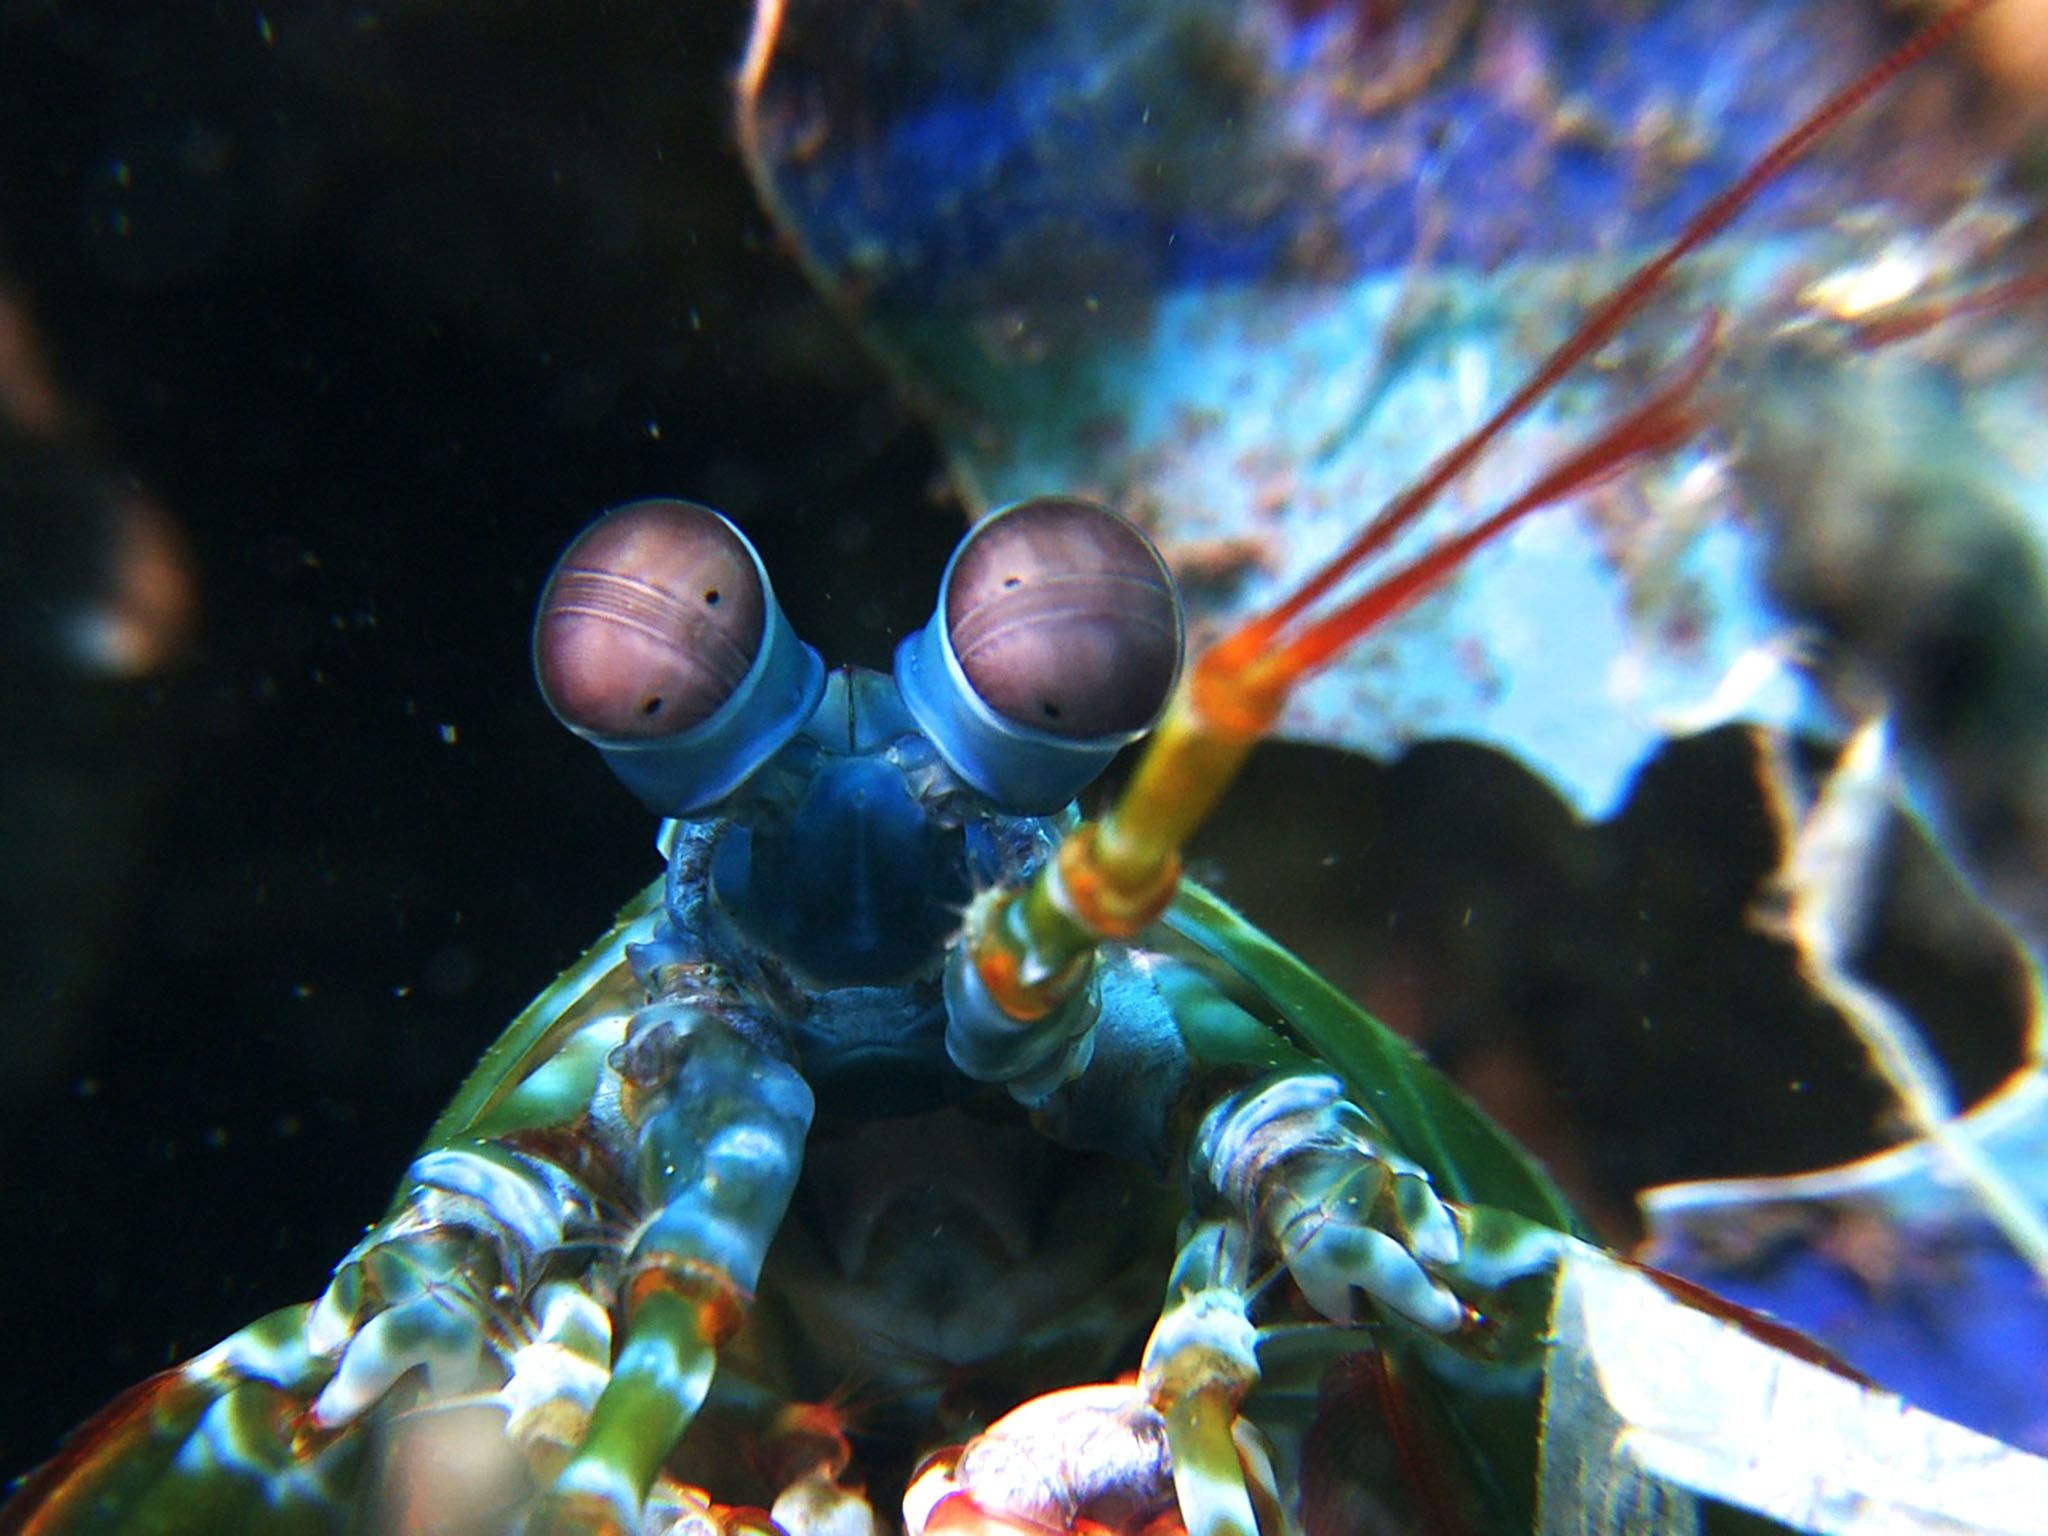 Indo-Pacific Ocean: The peacock mantis shrimp (odontodactylus scyllarus) is one of the larger,... [Photo of the day - July 2016]